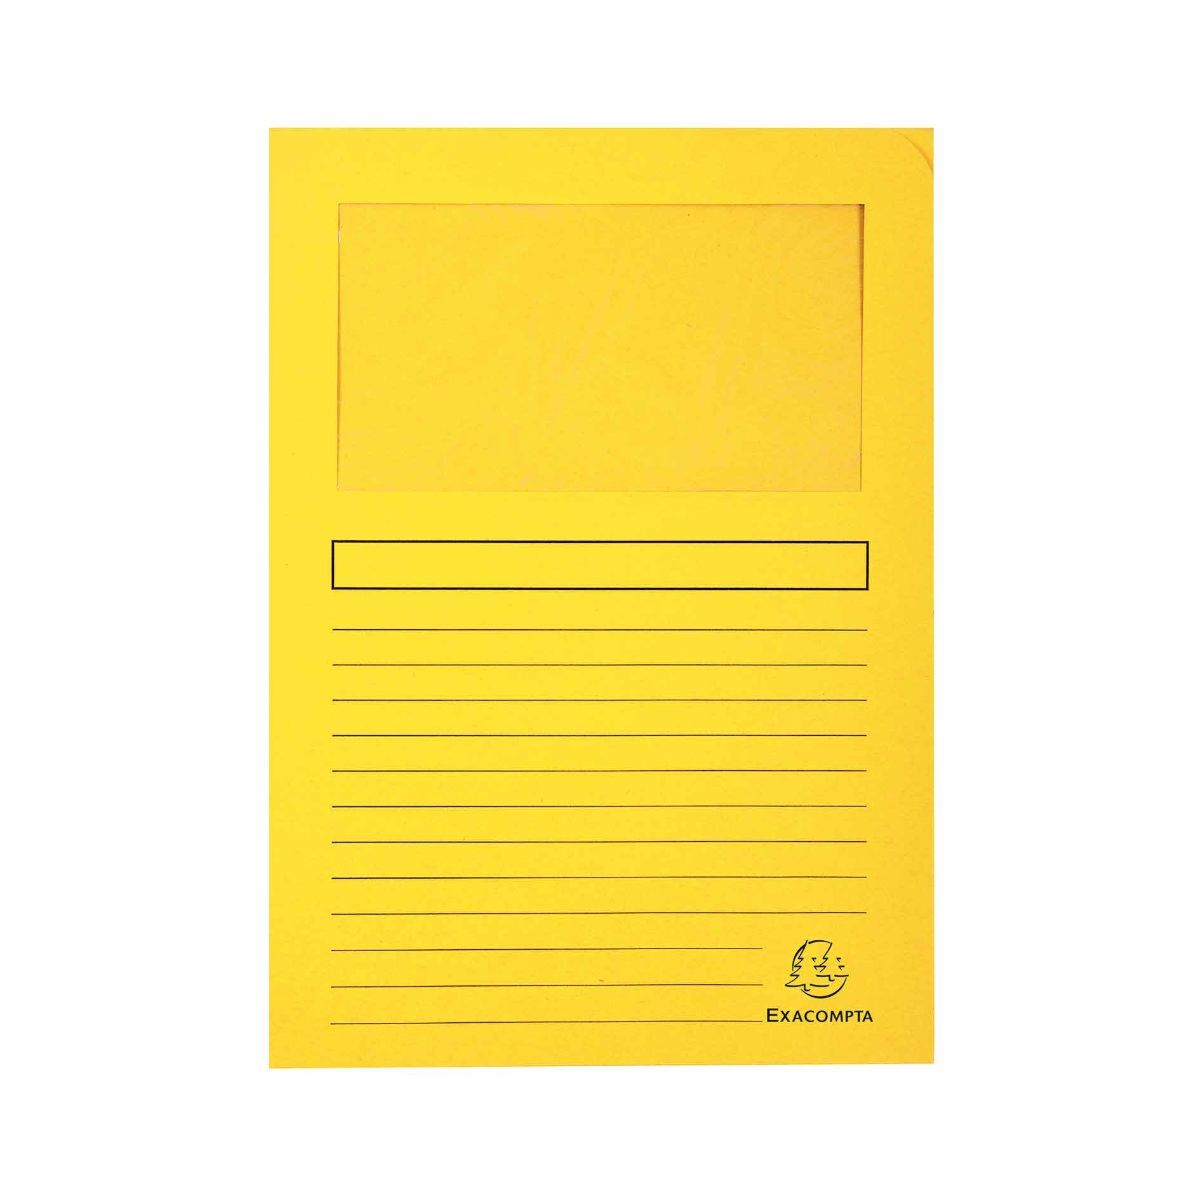 Exacompta Forever Window Folders A4 4 Packs of 100 Yellow